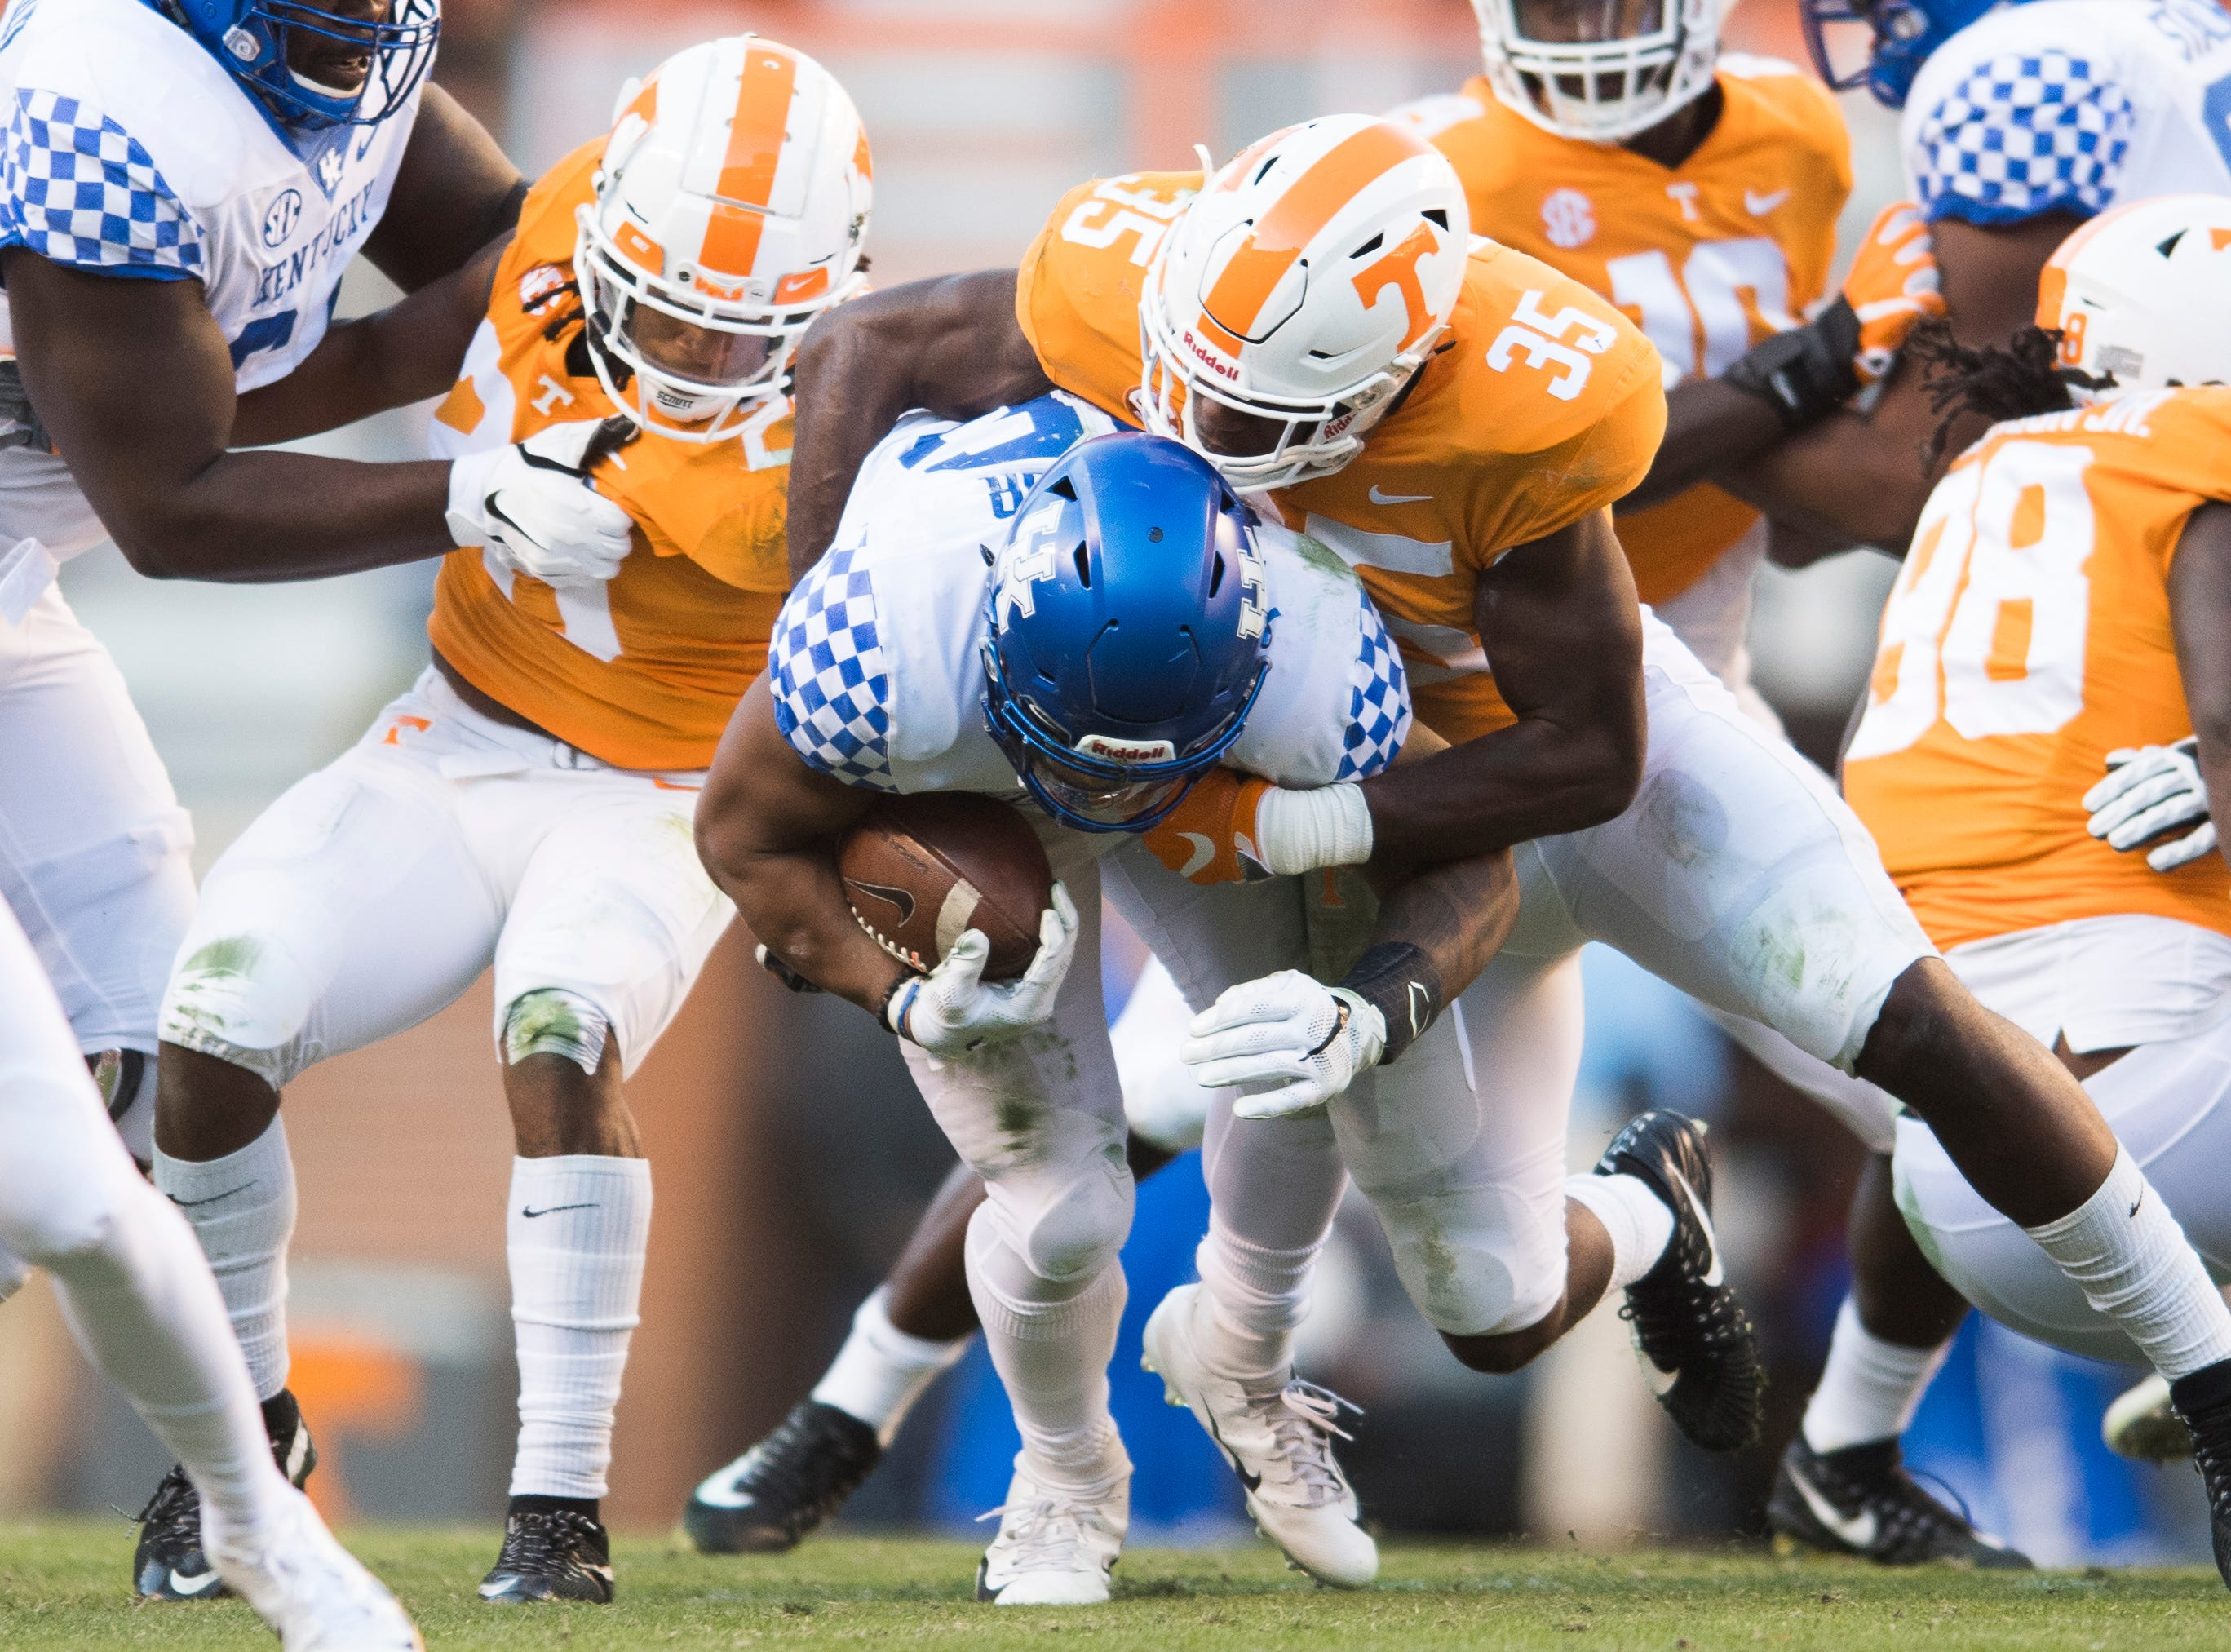 during a game between Tennessee and Kentucky at Neyland Stadium in Knoxville, Tennessee on Saturday, November 10, 2018.